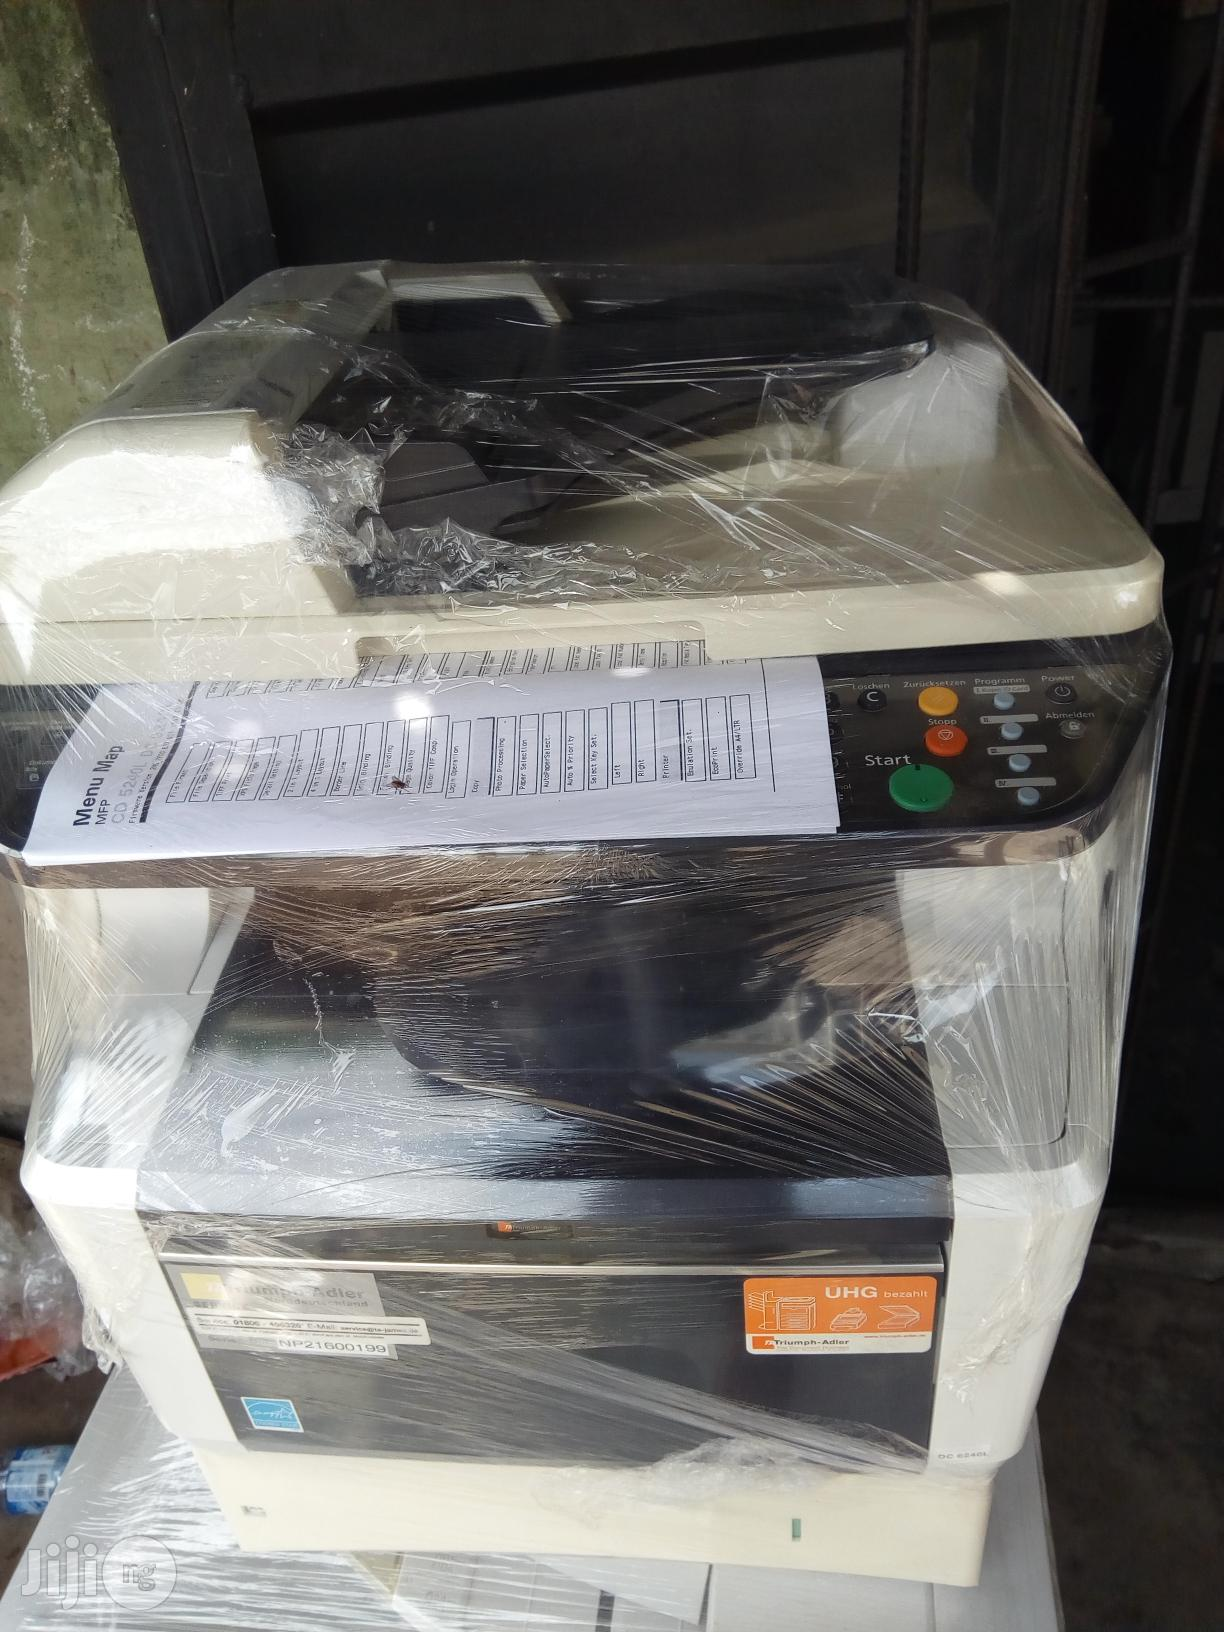 Kyocera/Triumph Adler Dc 6240 Multifunctional Photocopy | Printers & Scanners for sale in Surulere, Lagos State, Nigeria